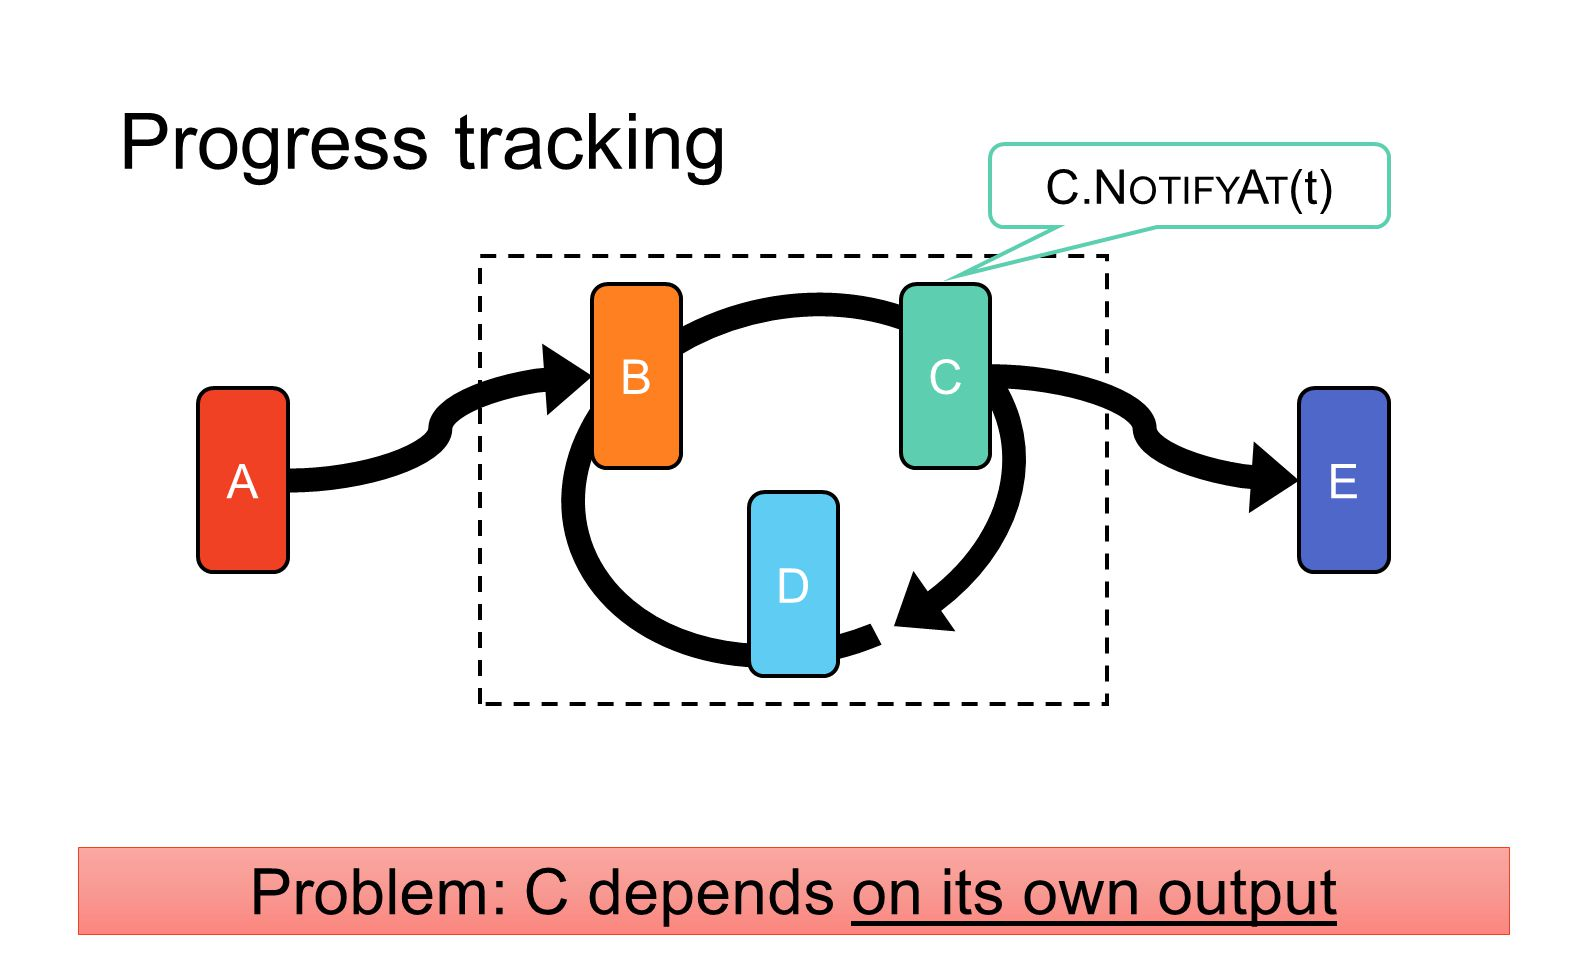 Problem: C depends on its own output